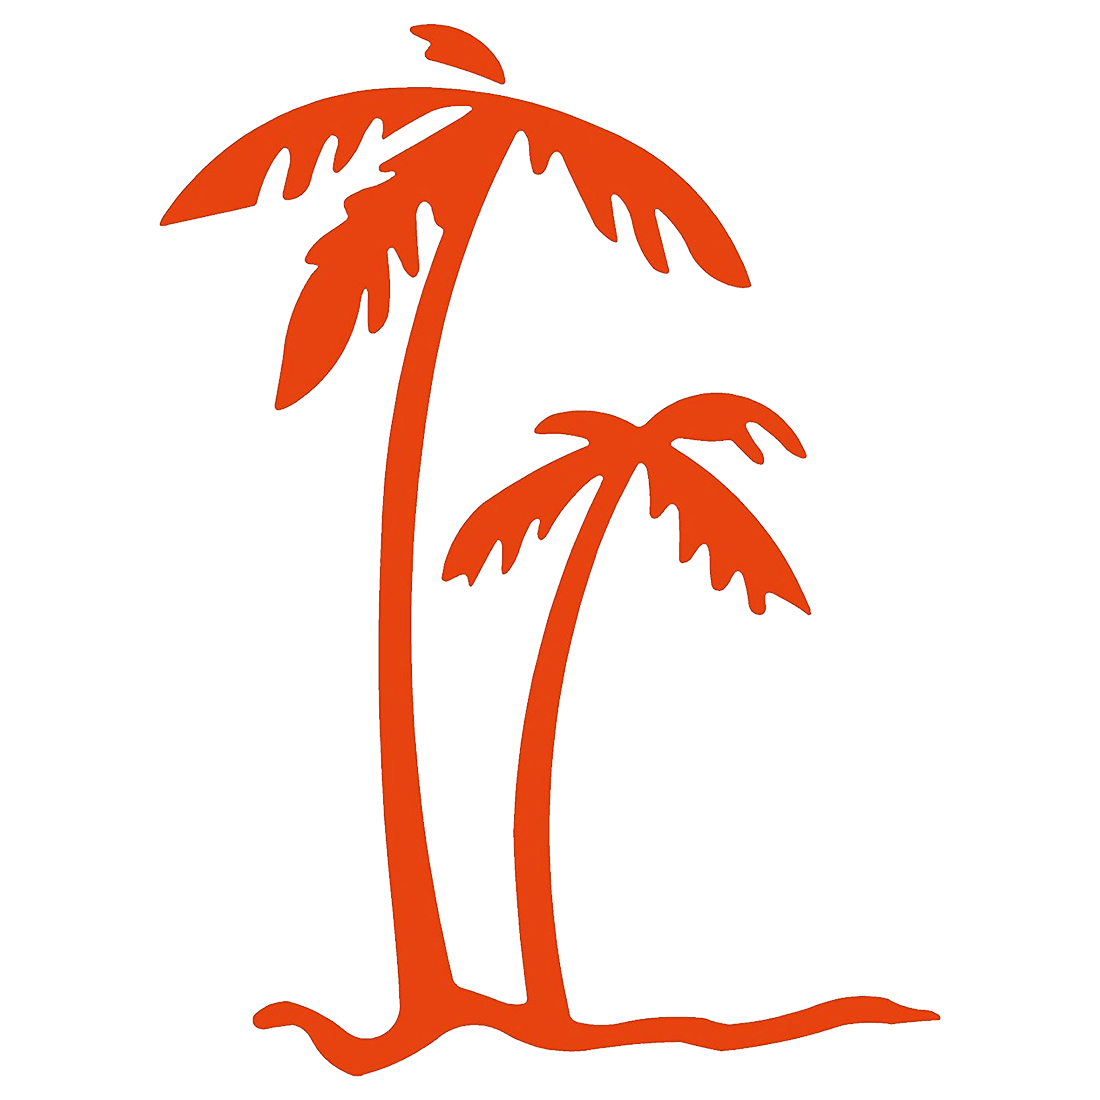 PALM TREES - Tropical Beach - Decal (12inch, Orange)